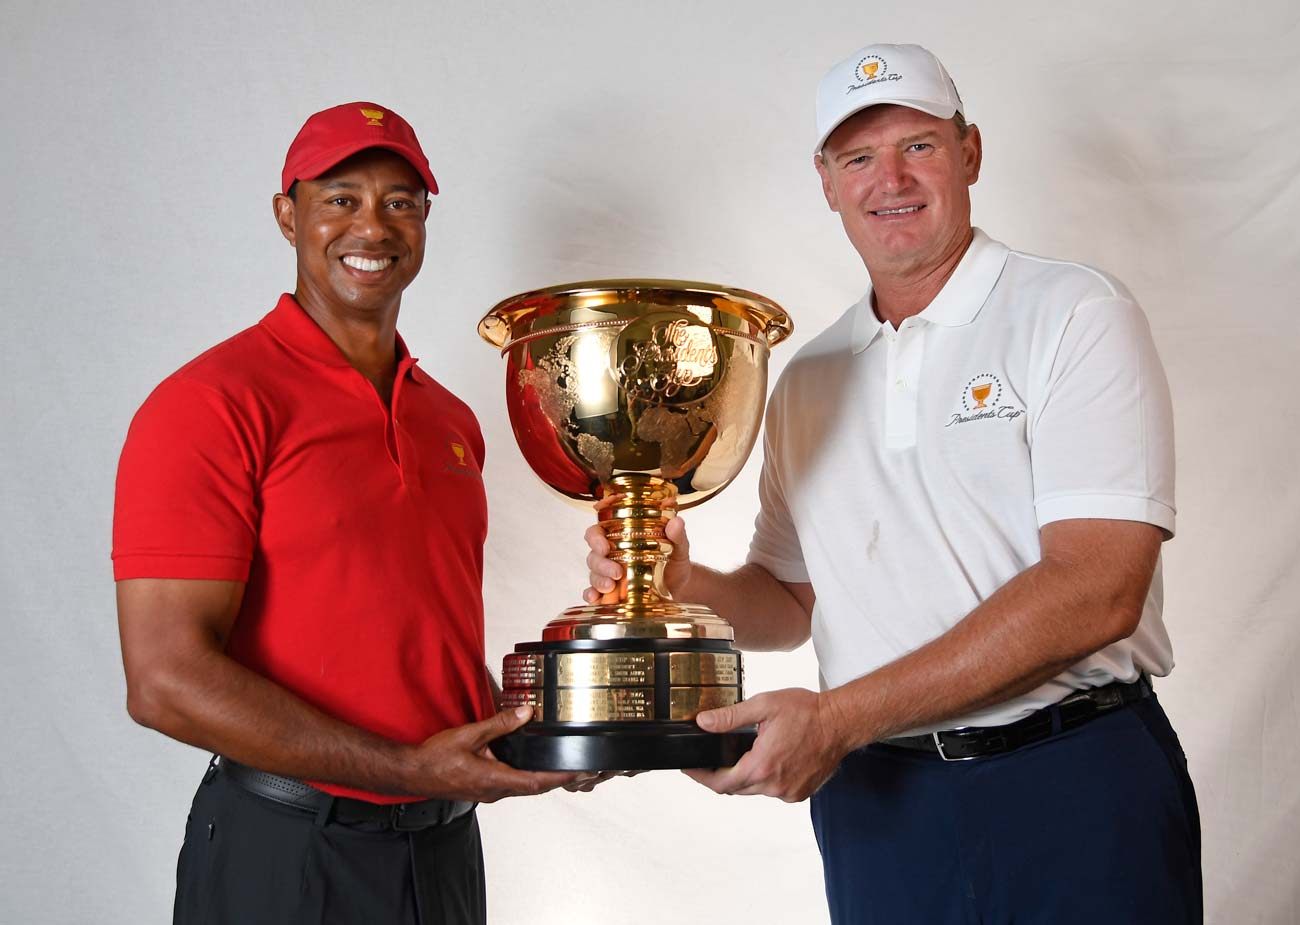 Tiger Woods and Ernie Els pose with the Presidents Cup. Woods will captain the U.S. team in Australia next year, while Ernie Els will head the Internationals.